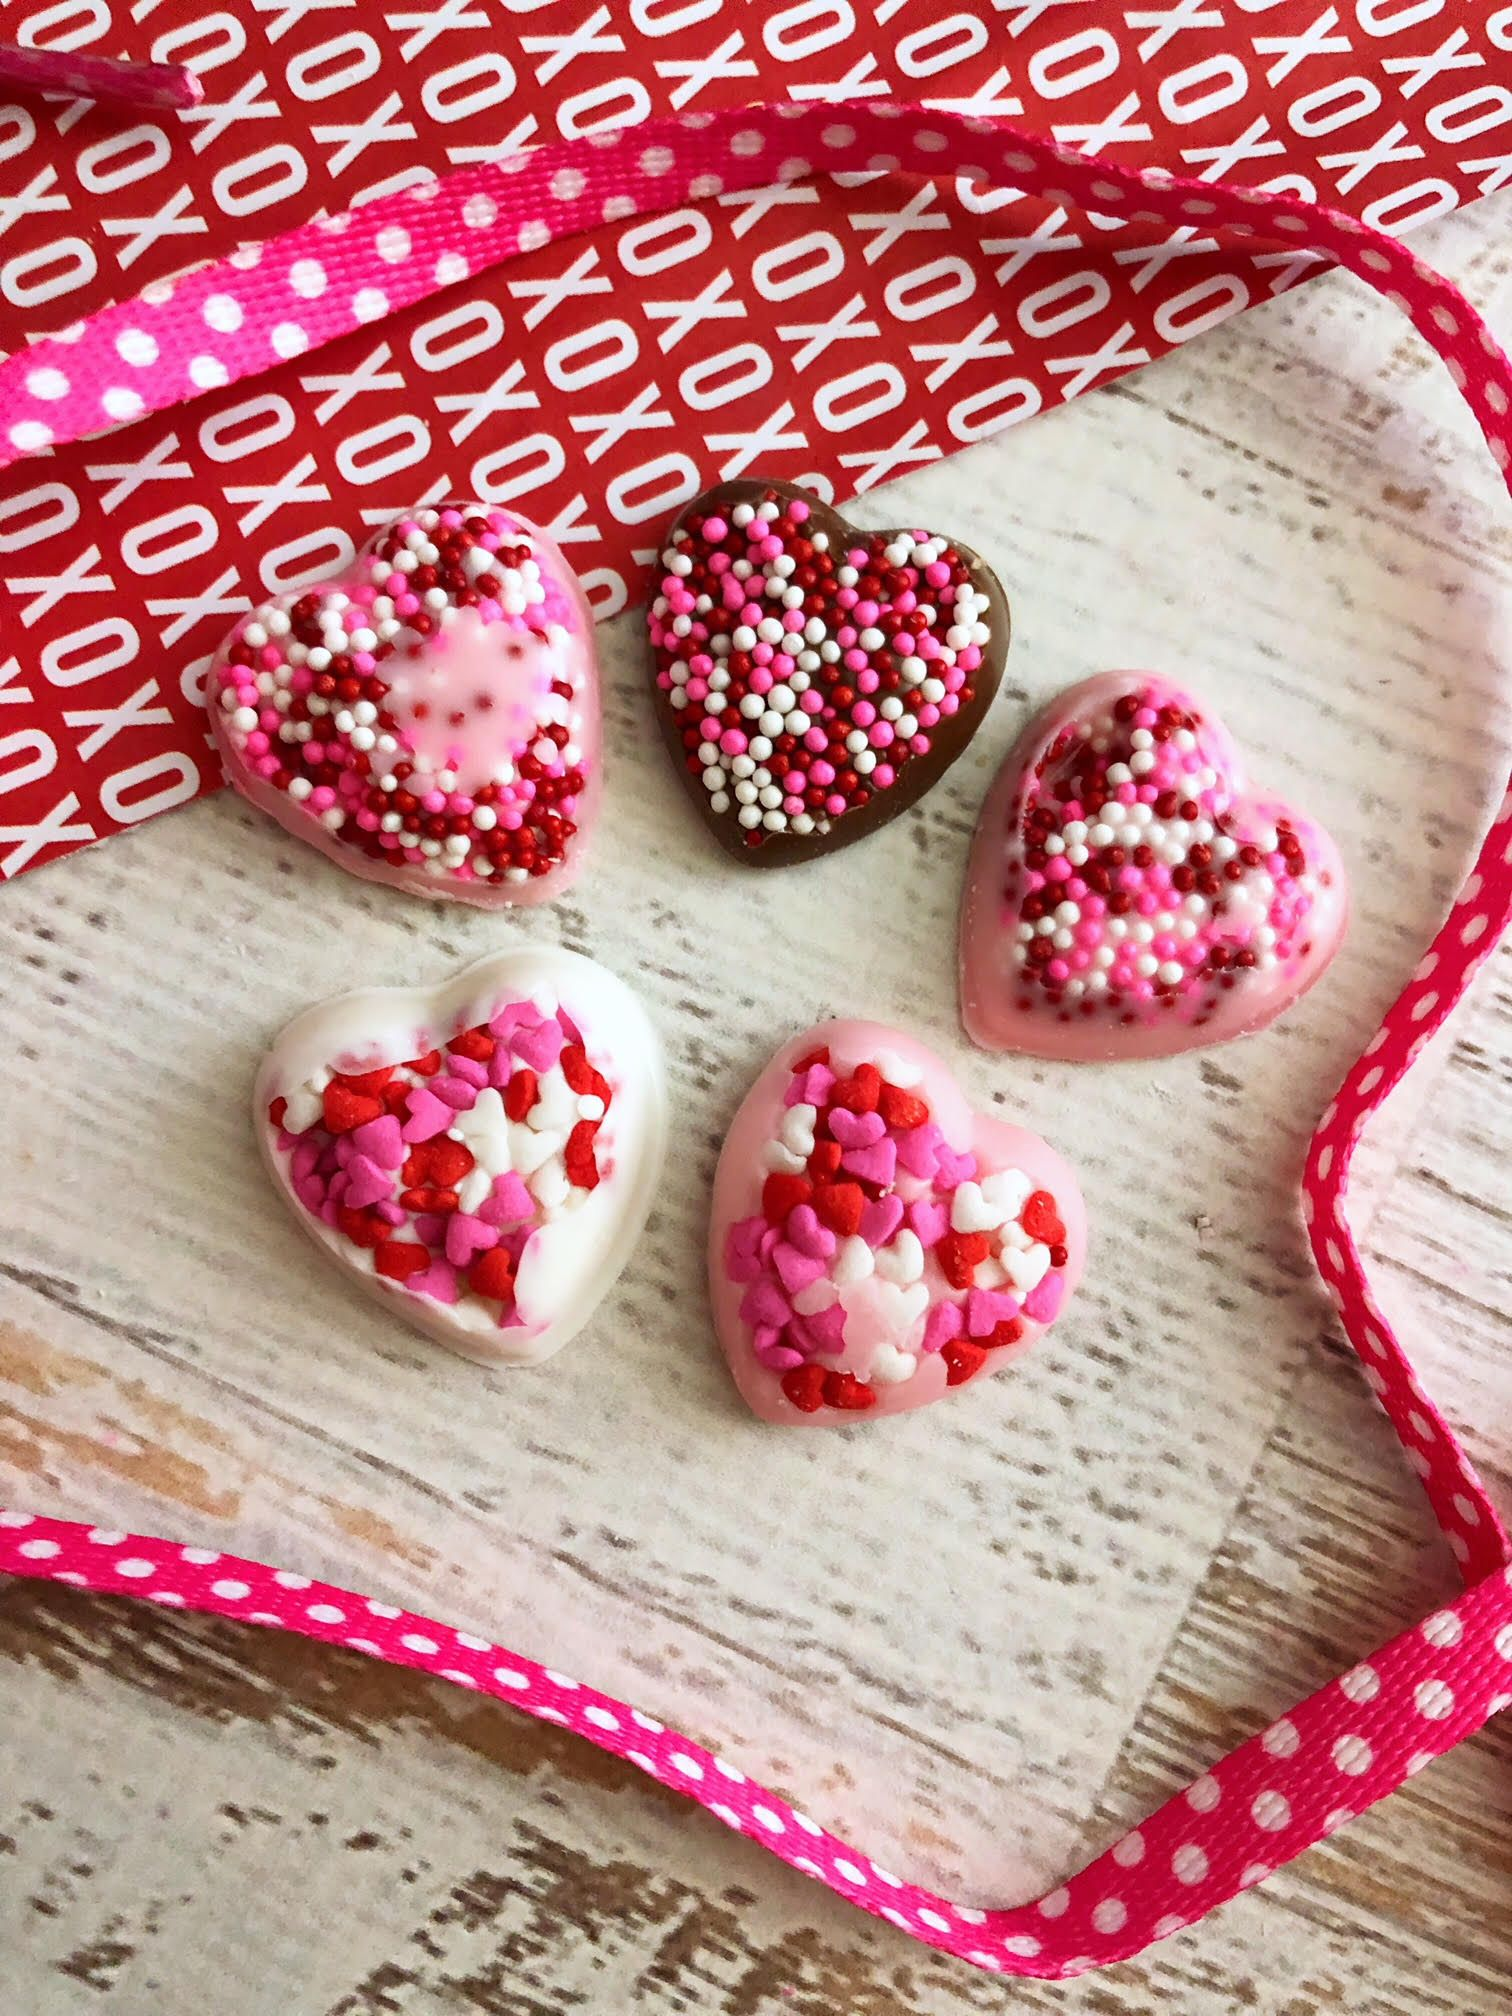 Valentine's Day homemade chocolate candy hearts with sprinkles - Teaspoon of Goodness